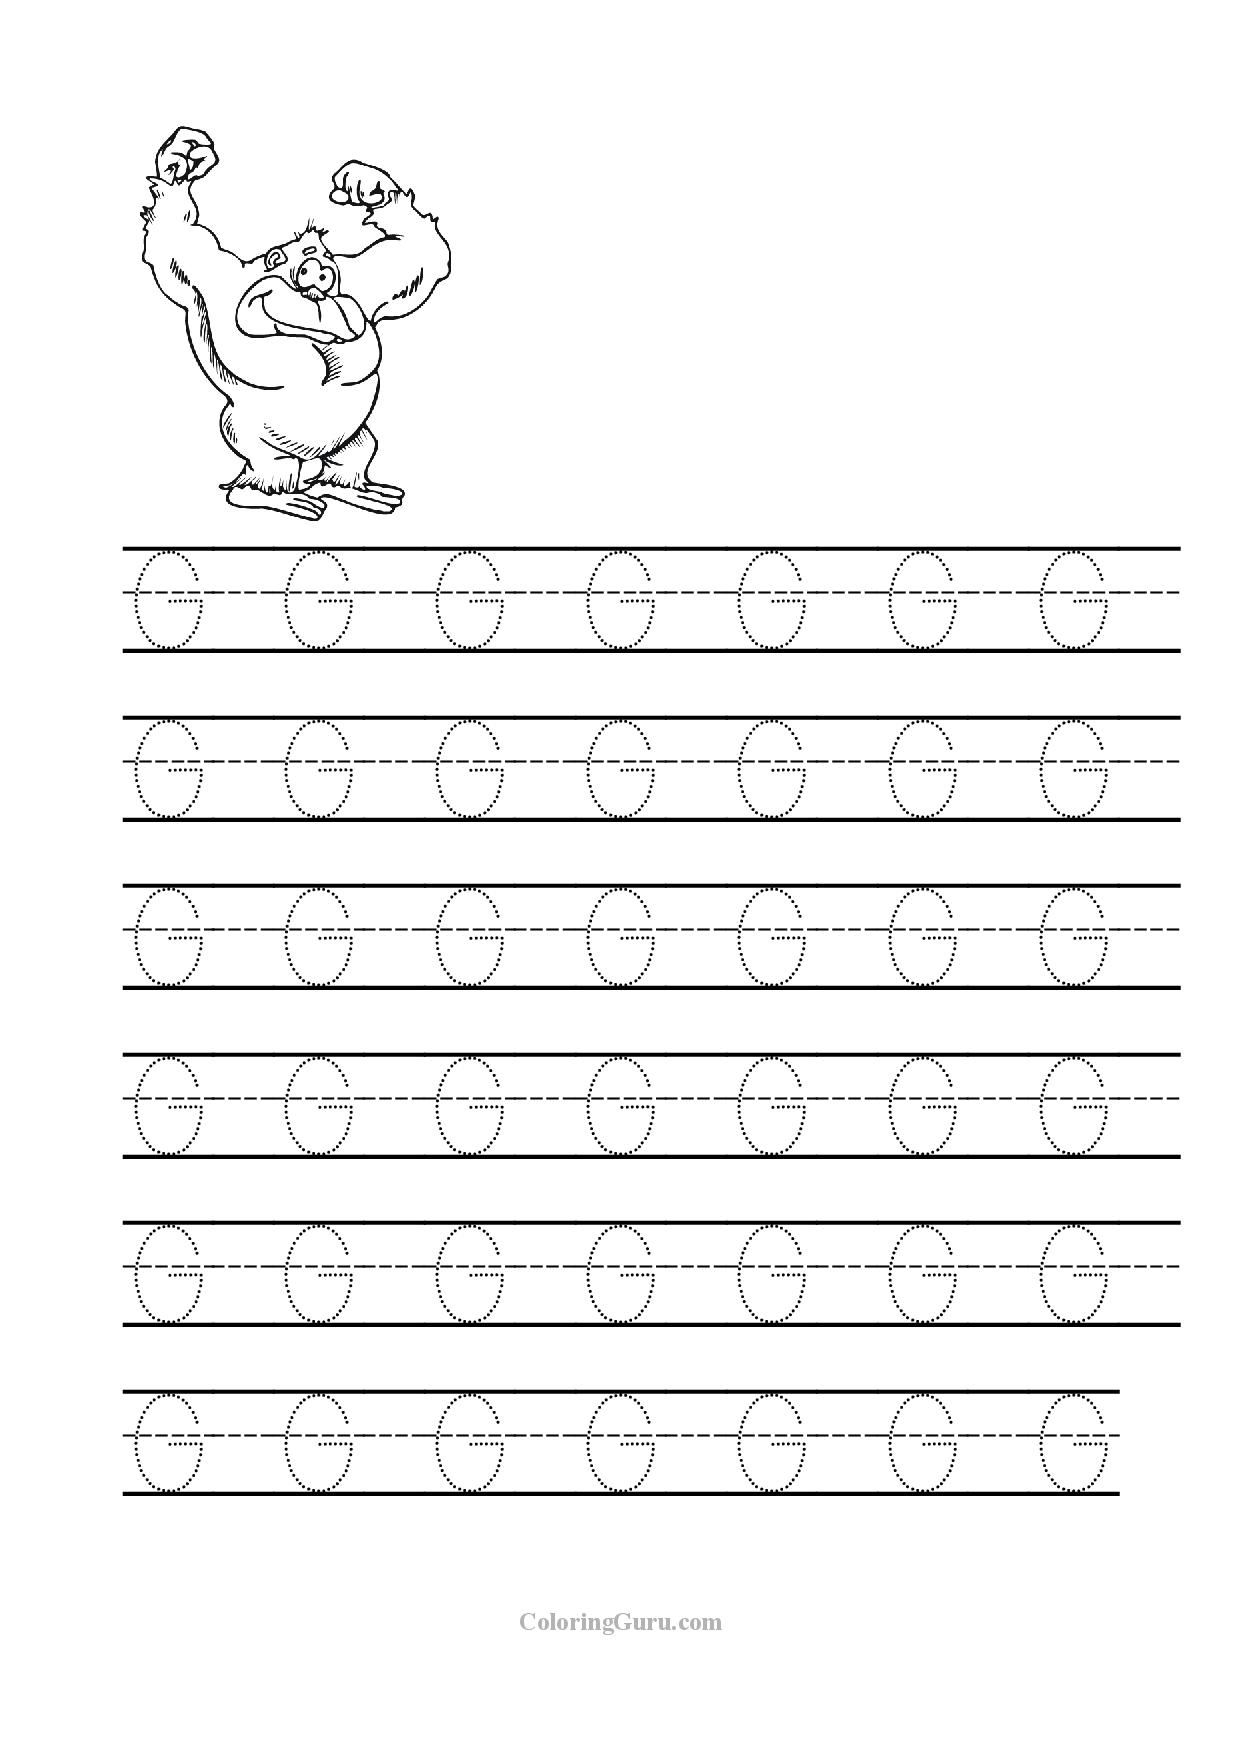 Free Printable Tracing Letter G Worksheets For Preschool inside Letter G Tracing Preschool